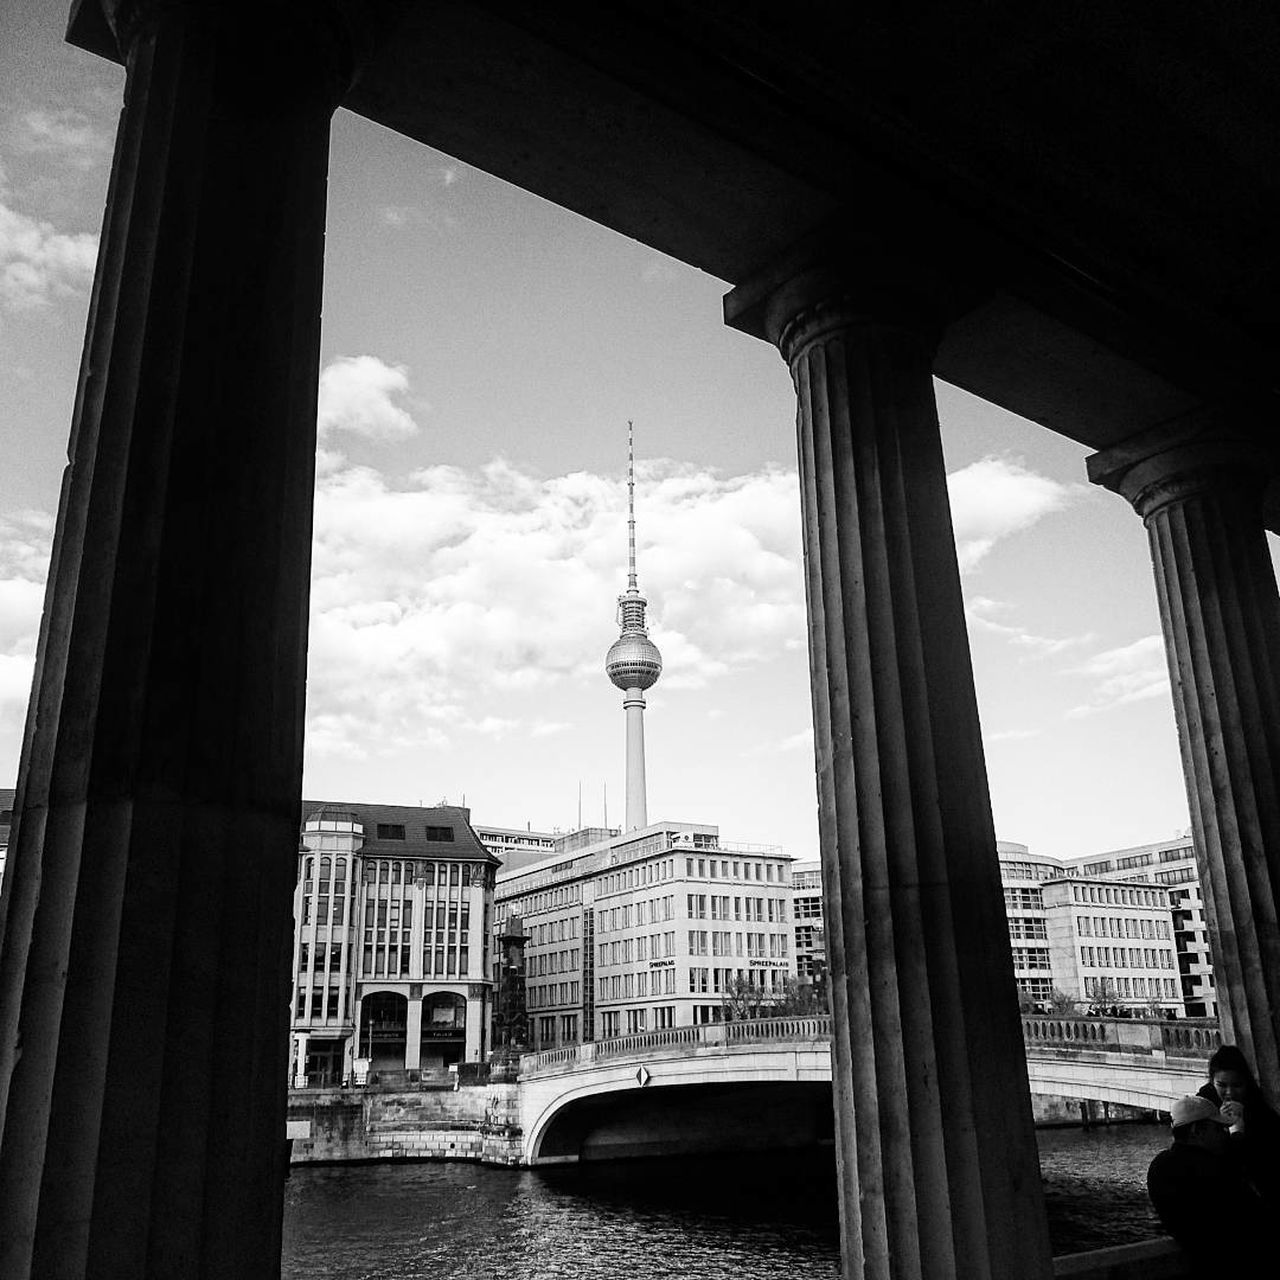 Bw BW_photography Black And White Photography Tvtowerberlin Berlin Tvtower